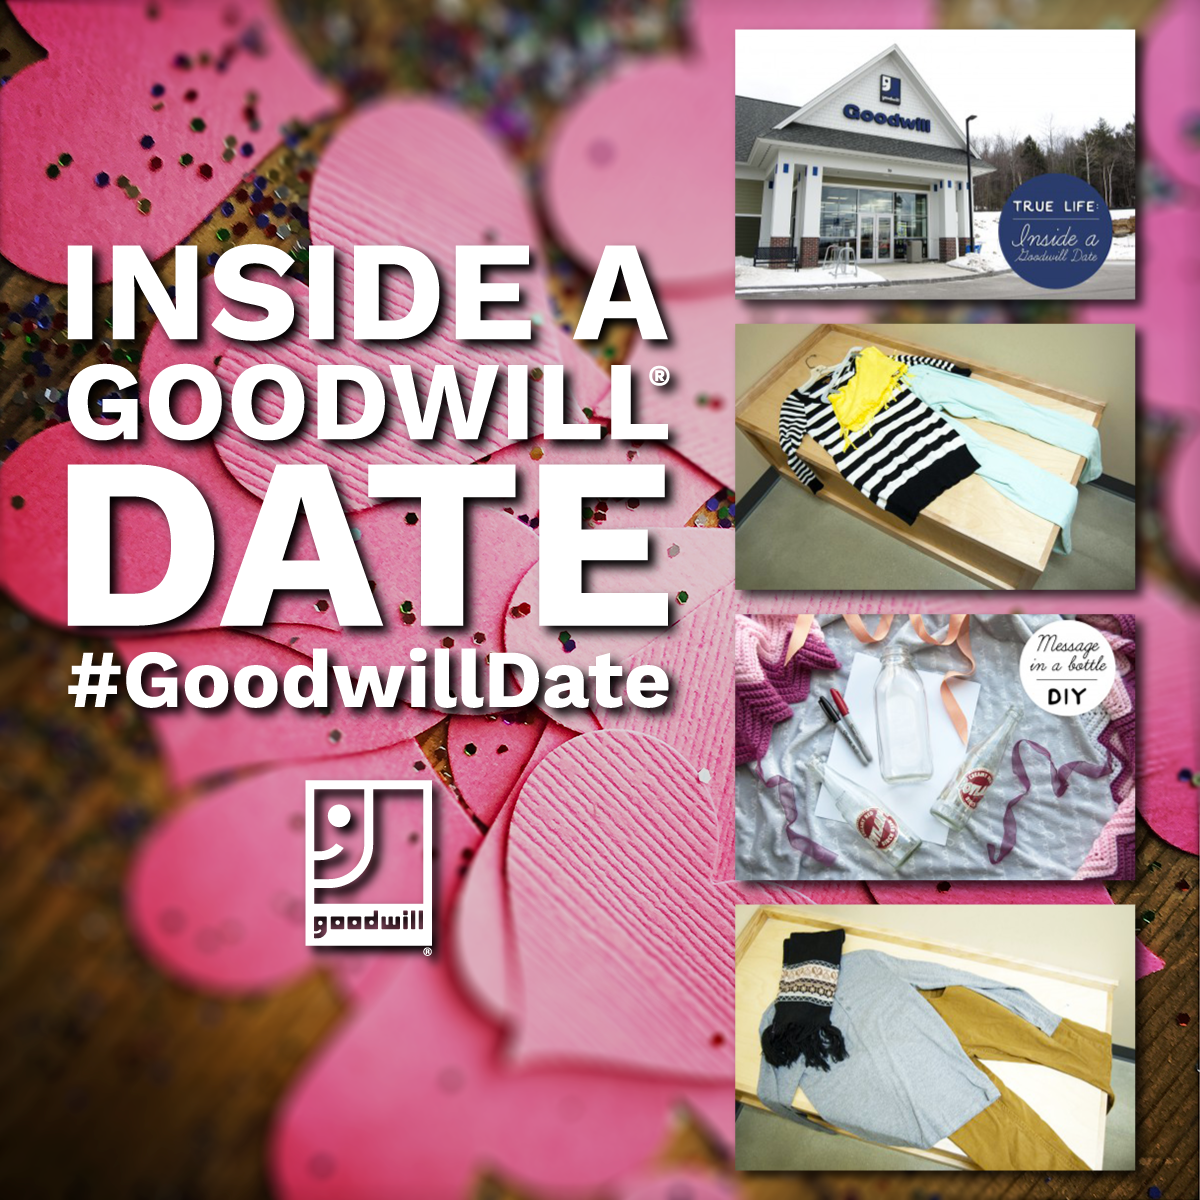 True Life: Inside a Goodwill® Date